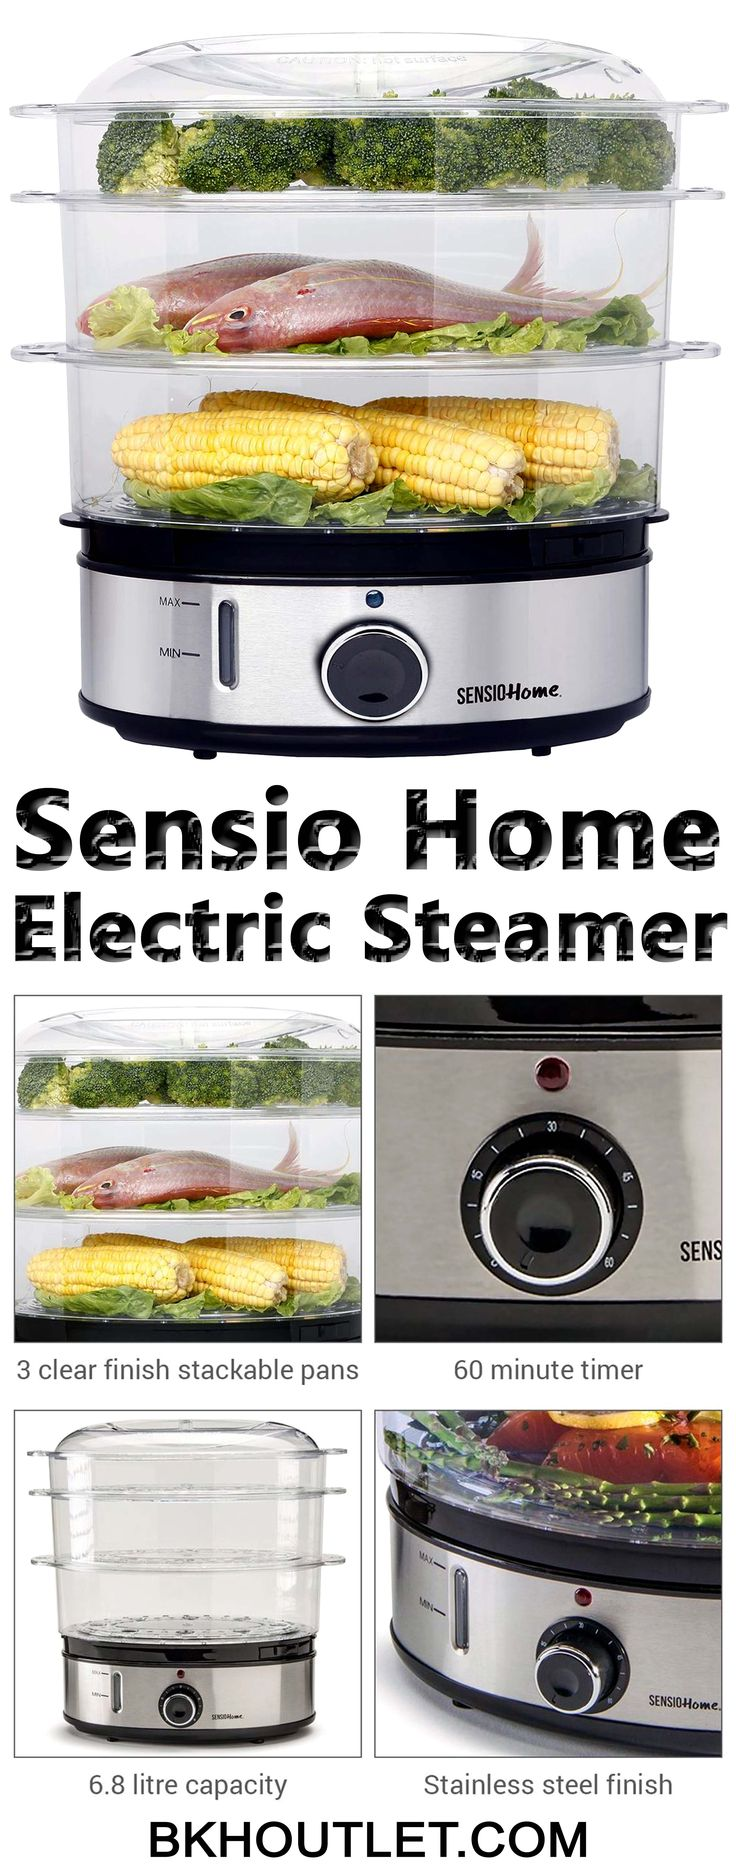 The Sensio Home Stainless Steel 3 Tier Steamer allows you to cook vegetables, meat and fish in healthy way that helps retain natural flavour and goodness. │kitchen appliances │blender │coffee maker │hot plates │kettles │mixers │slow cookers │steamers │toasters │speciality appliances #kitchenappliances #blender #coffeemaker #hotplates #kettles #mixers #slowcookers #steamers #toasters #specialityappliances